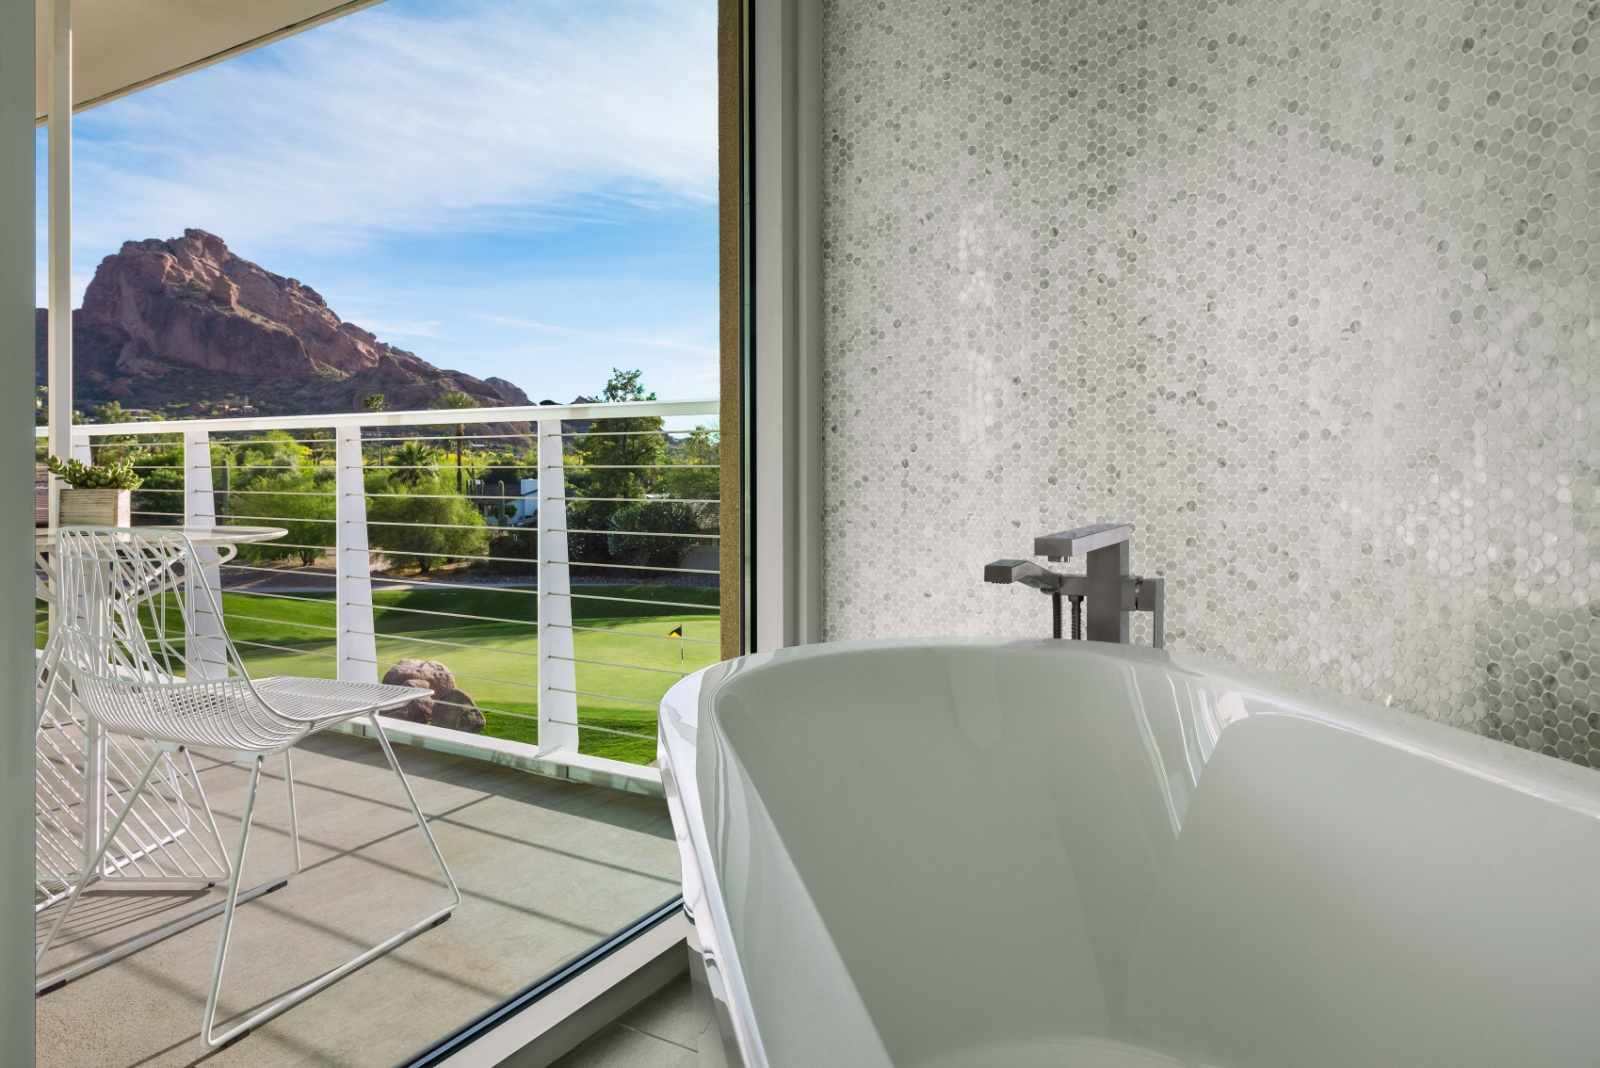 The oversized soaking tub was angled to take advantage of the view.